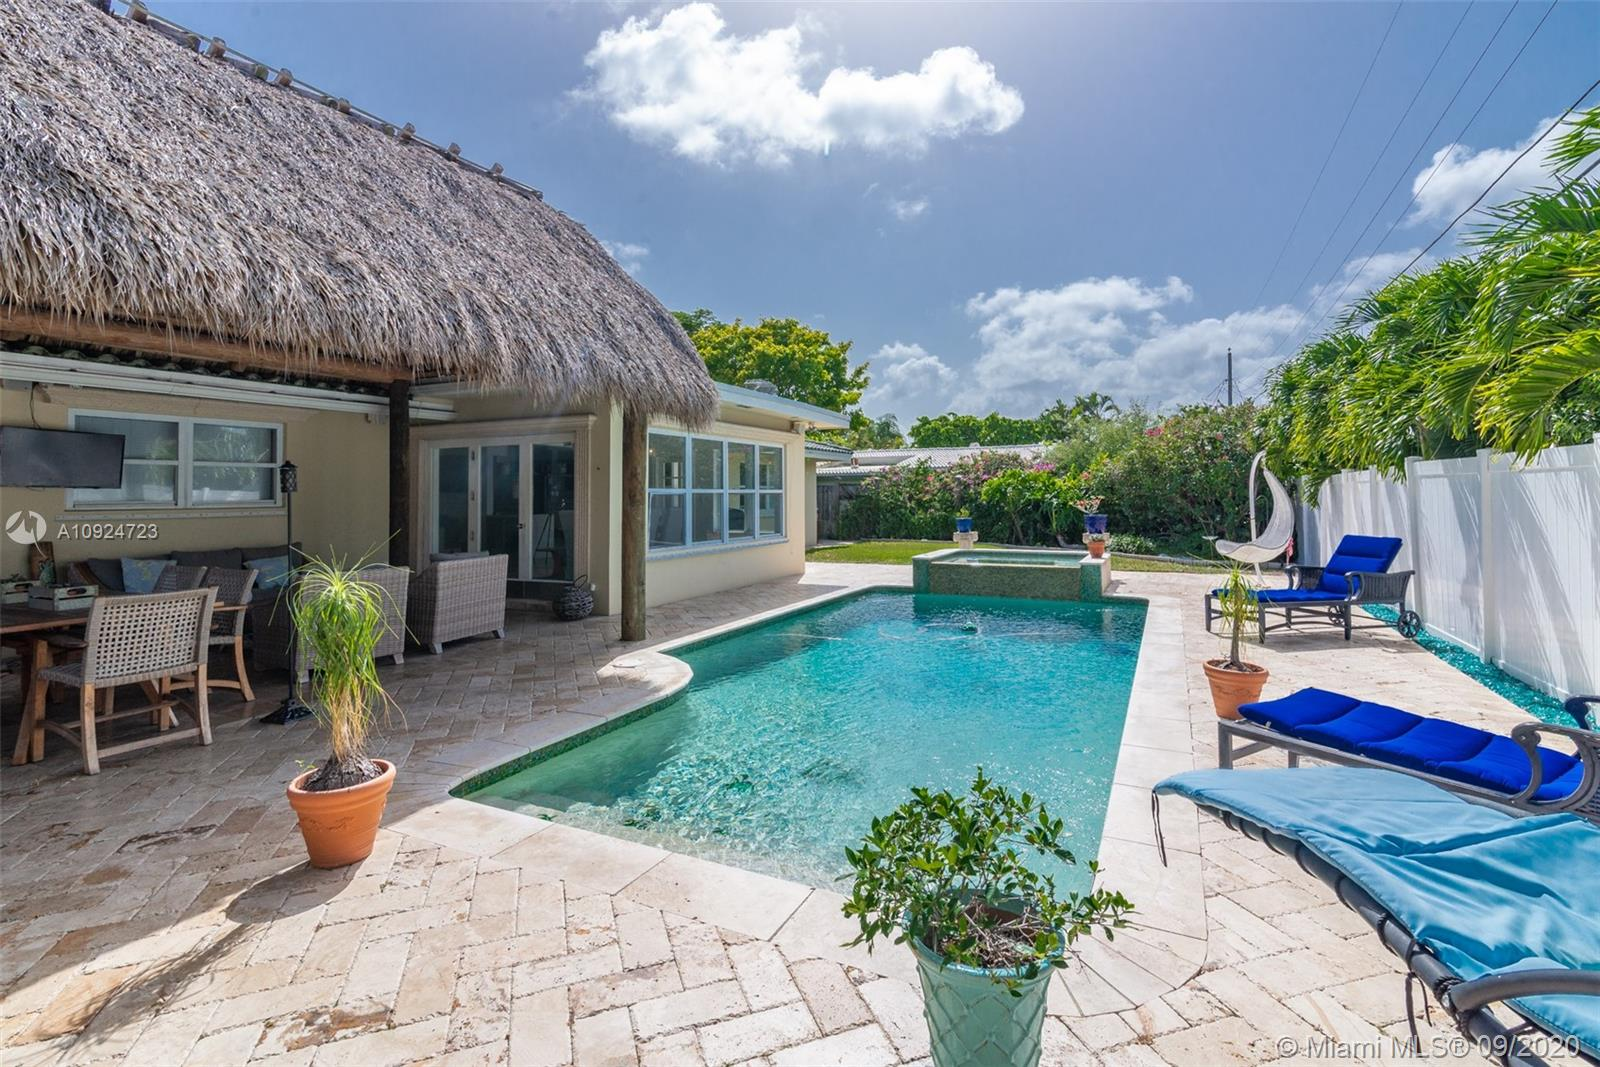 Perfect opportunity to own your piece of paradise in The Cove! This 2/2 has an open concept design with lots of natural light, retraso floors all throughout home, modern kitchen with wood cabinetry and stainless steel appliances, master bathroom has been upgraded to all white subway tiles and black appliances, office/storage space including the laundry room that could also be utilized as a one car garage. Enjoy the feel of the tropics in your backyard with the pool, spa jacuzzi and Tiki Hut perfect for entertaining guest!